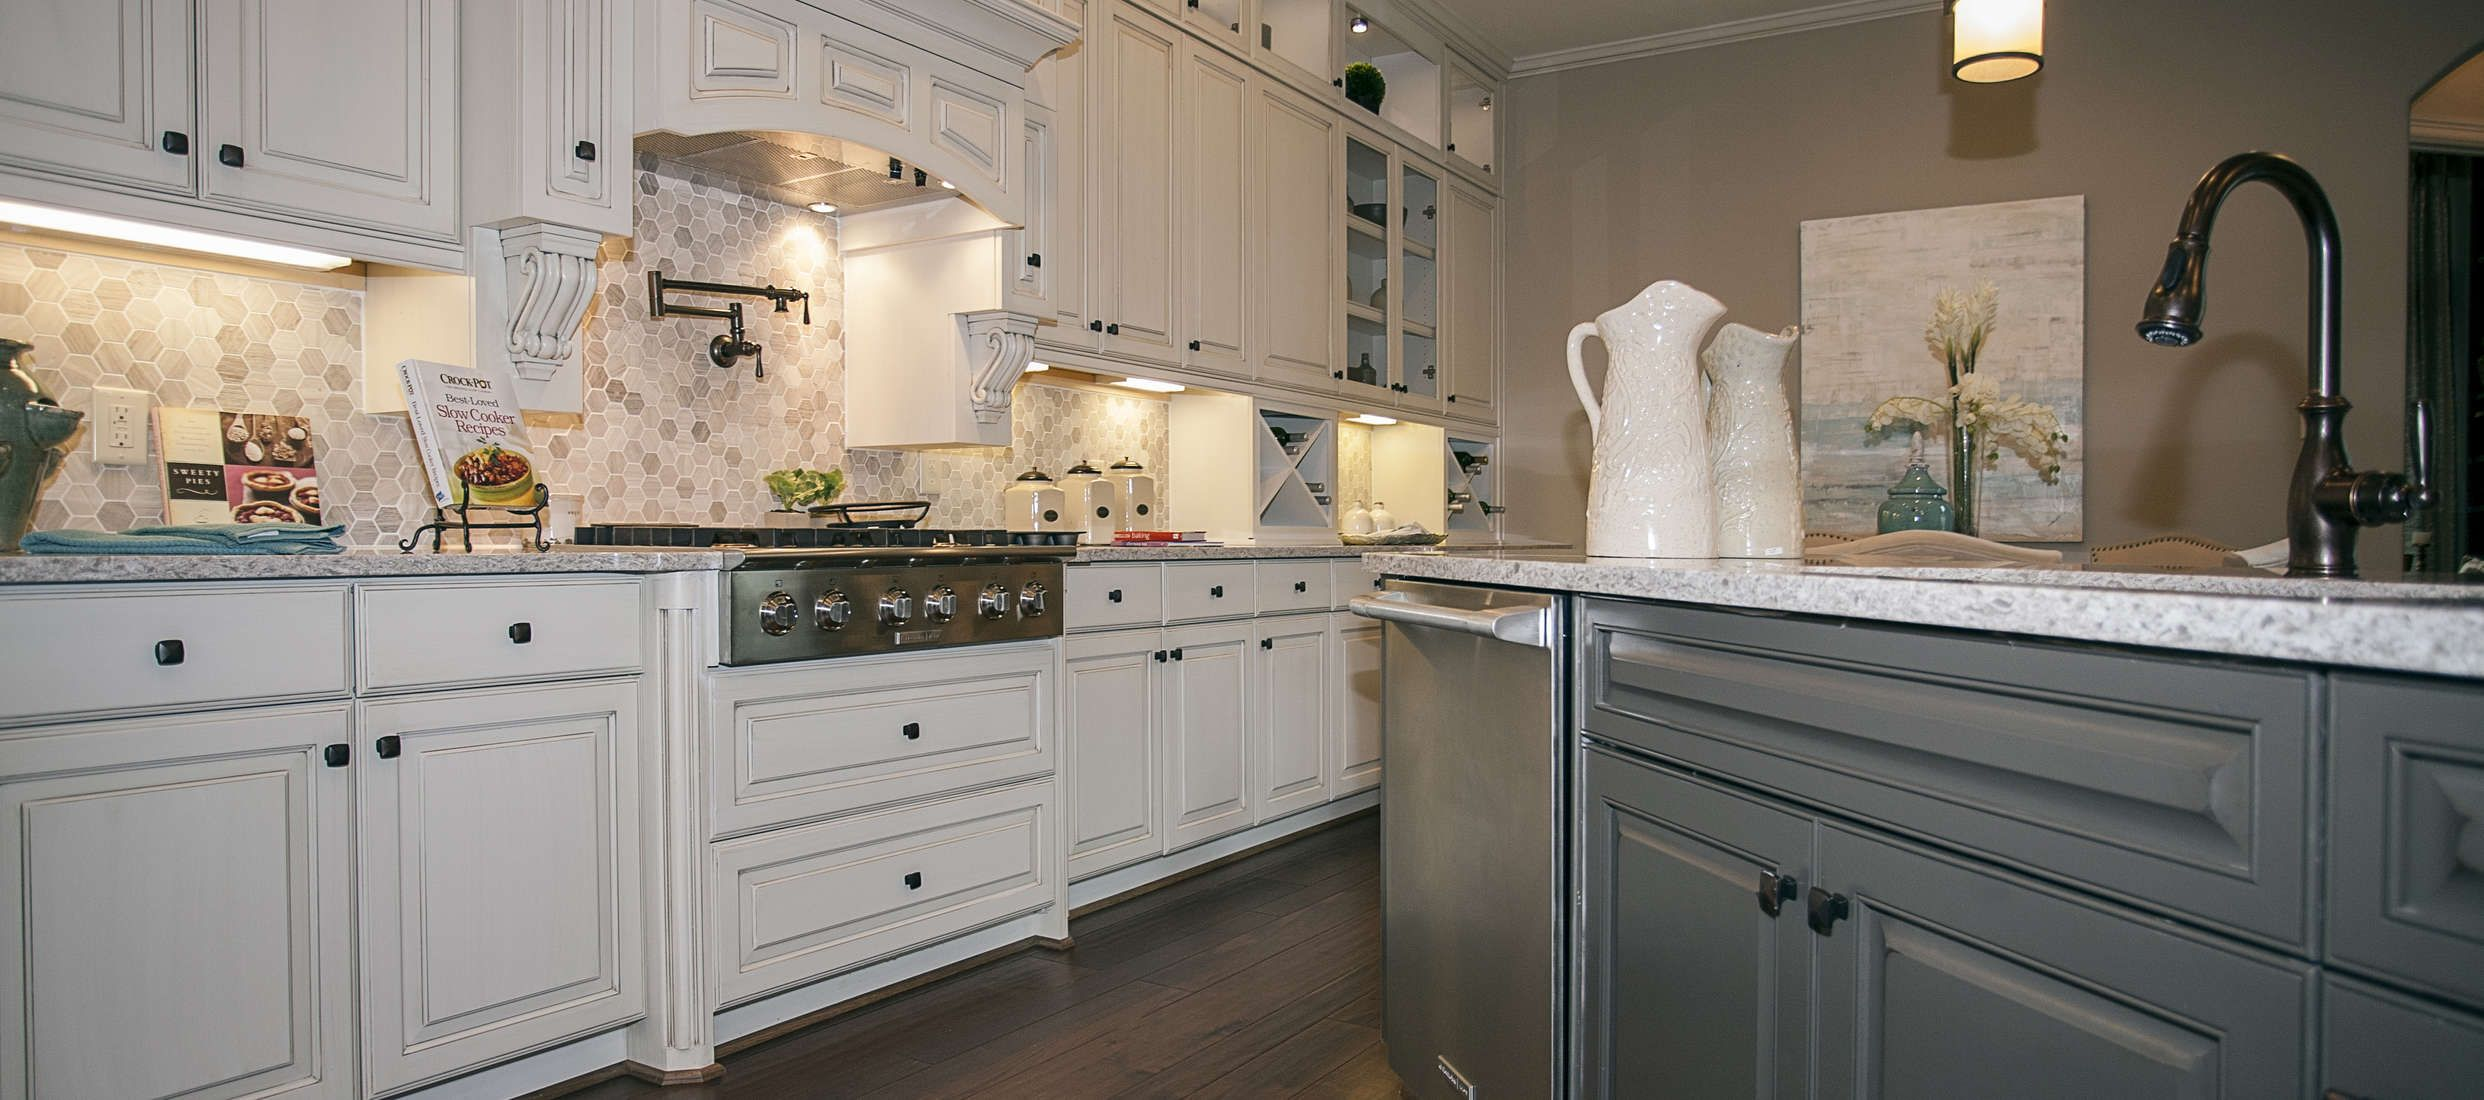 Custom Kitchen Cabinets Houston J Kraft Inc Custom Cabinets By Houston Cabinet Company